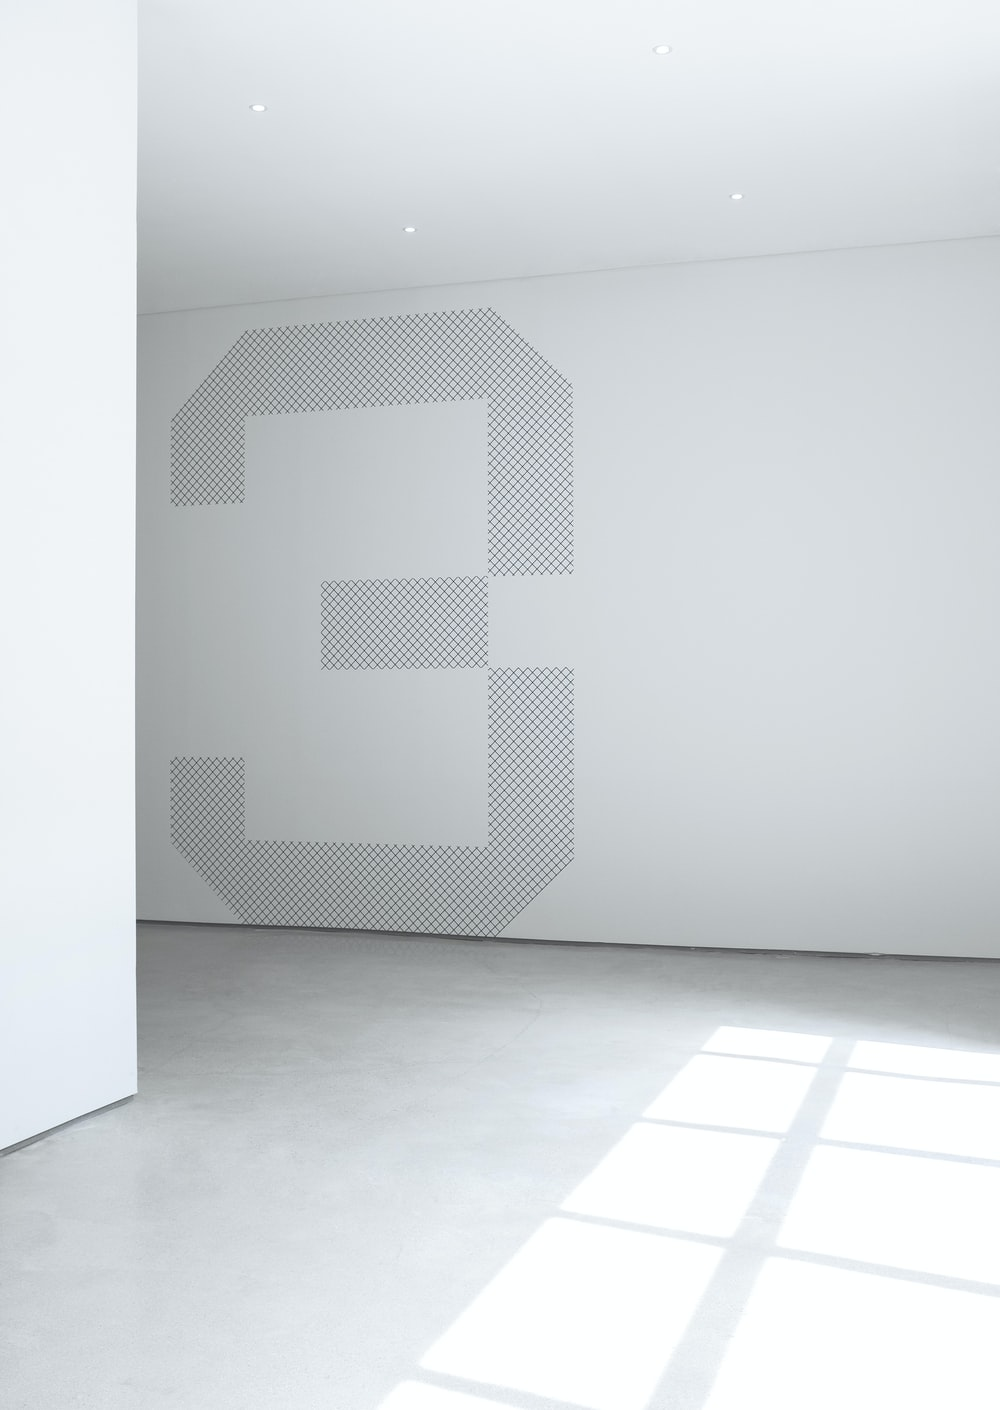 photo of white concrete wall inside room